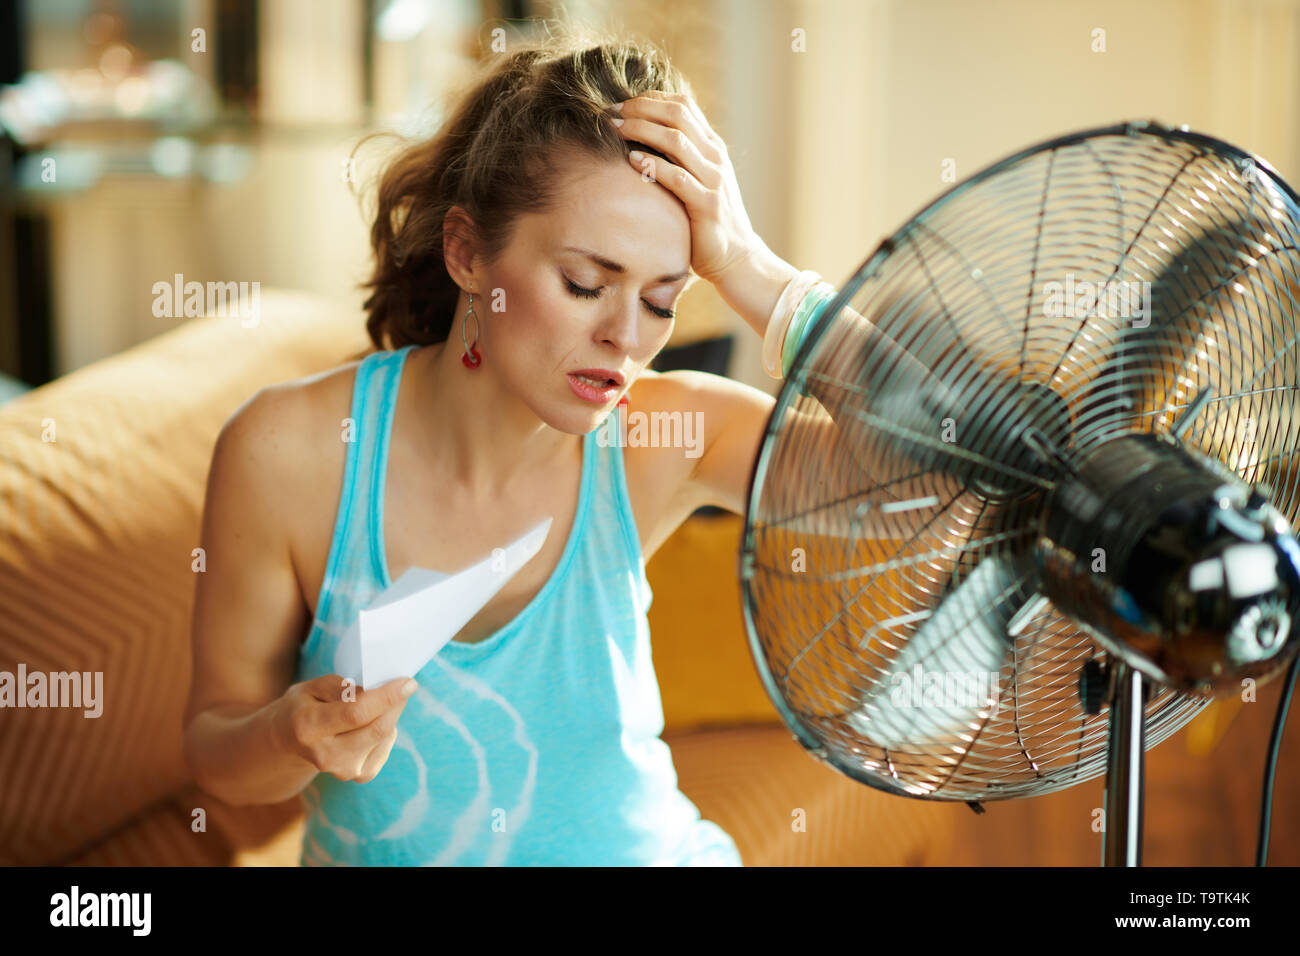 unhappy housewife in the modern house in sunny hot summer day in the front of working fan suffering from summer heat - Stock Image